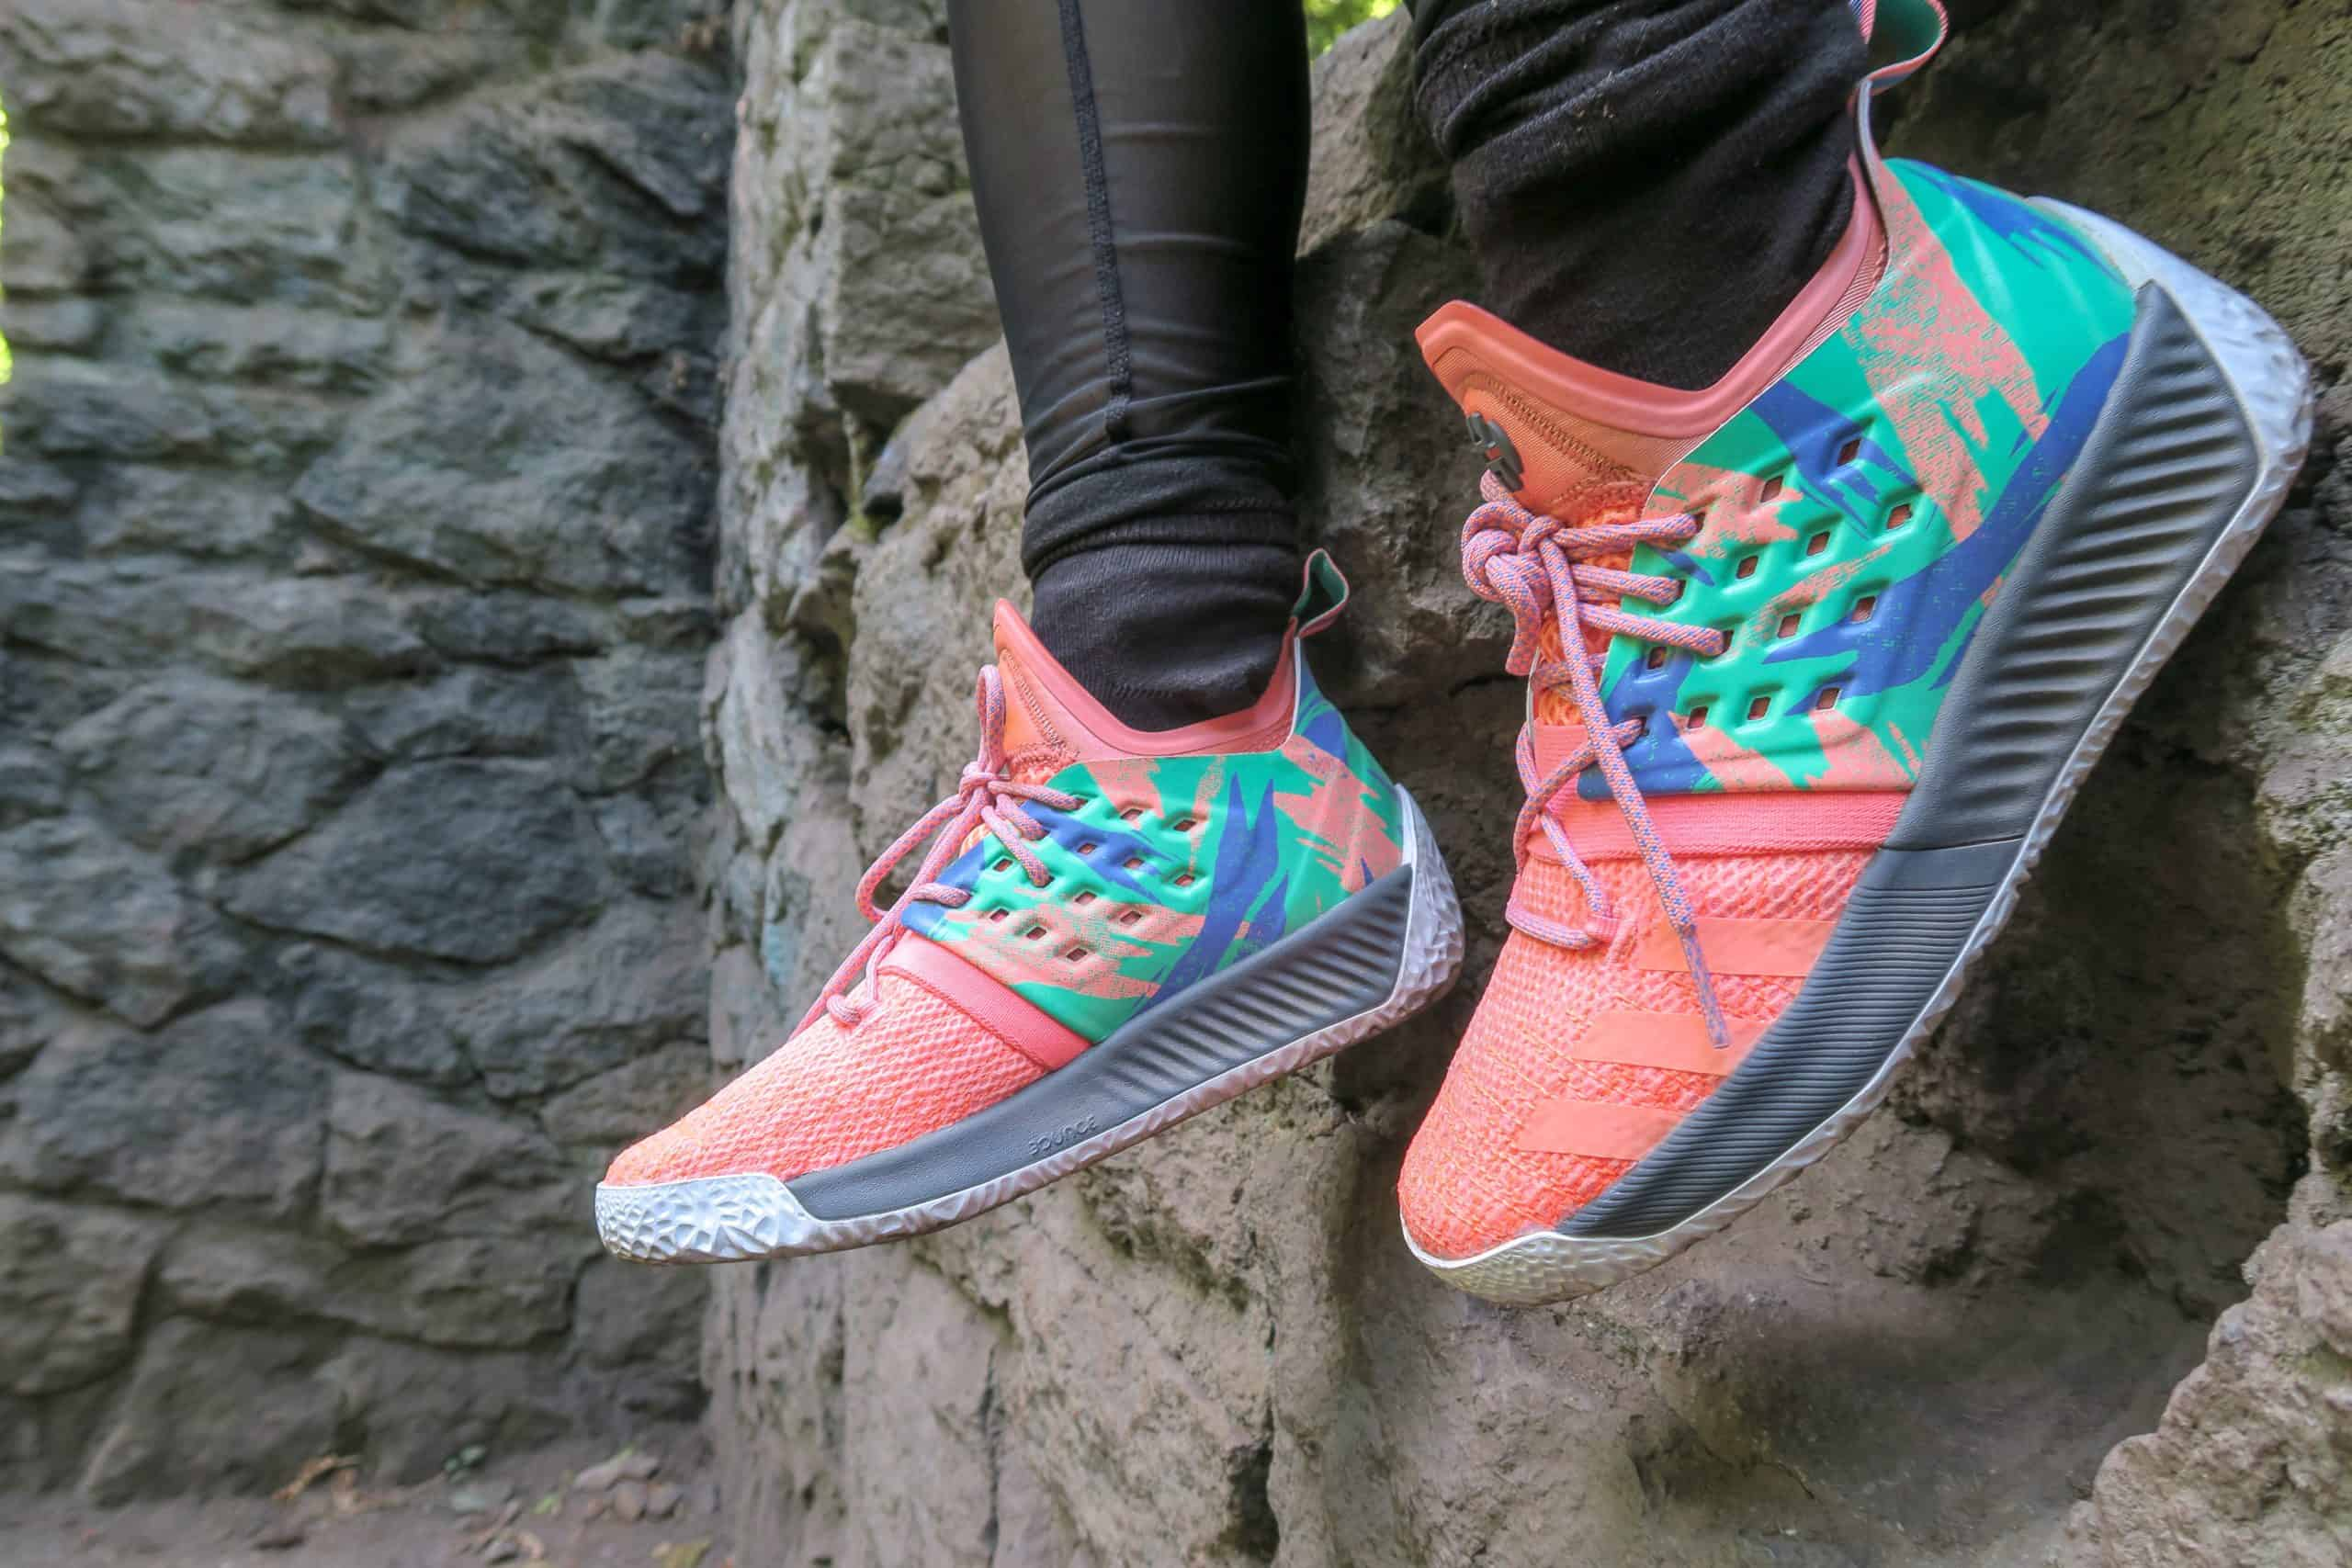 Top 3 Performance Running Shoes For Women